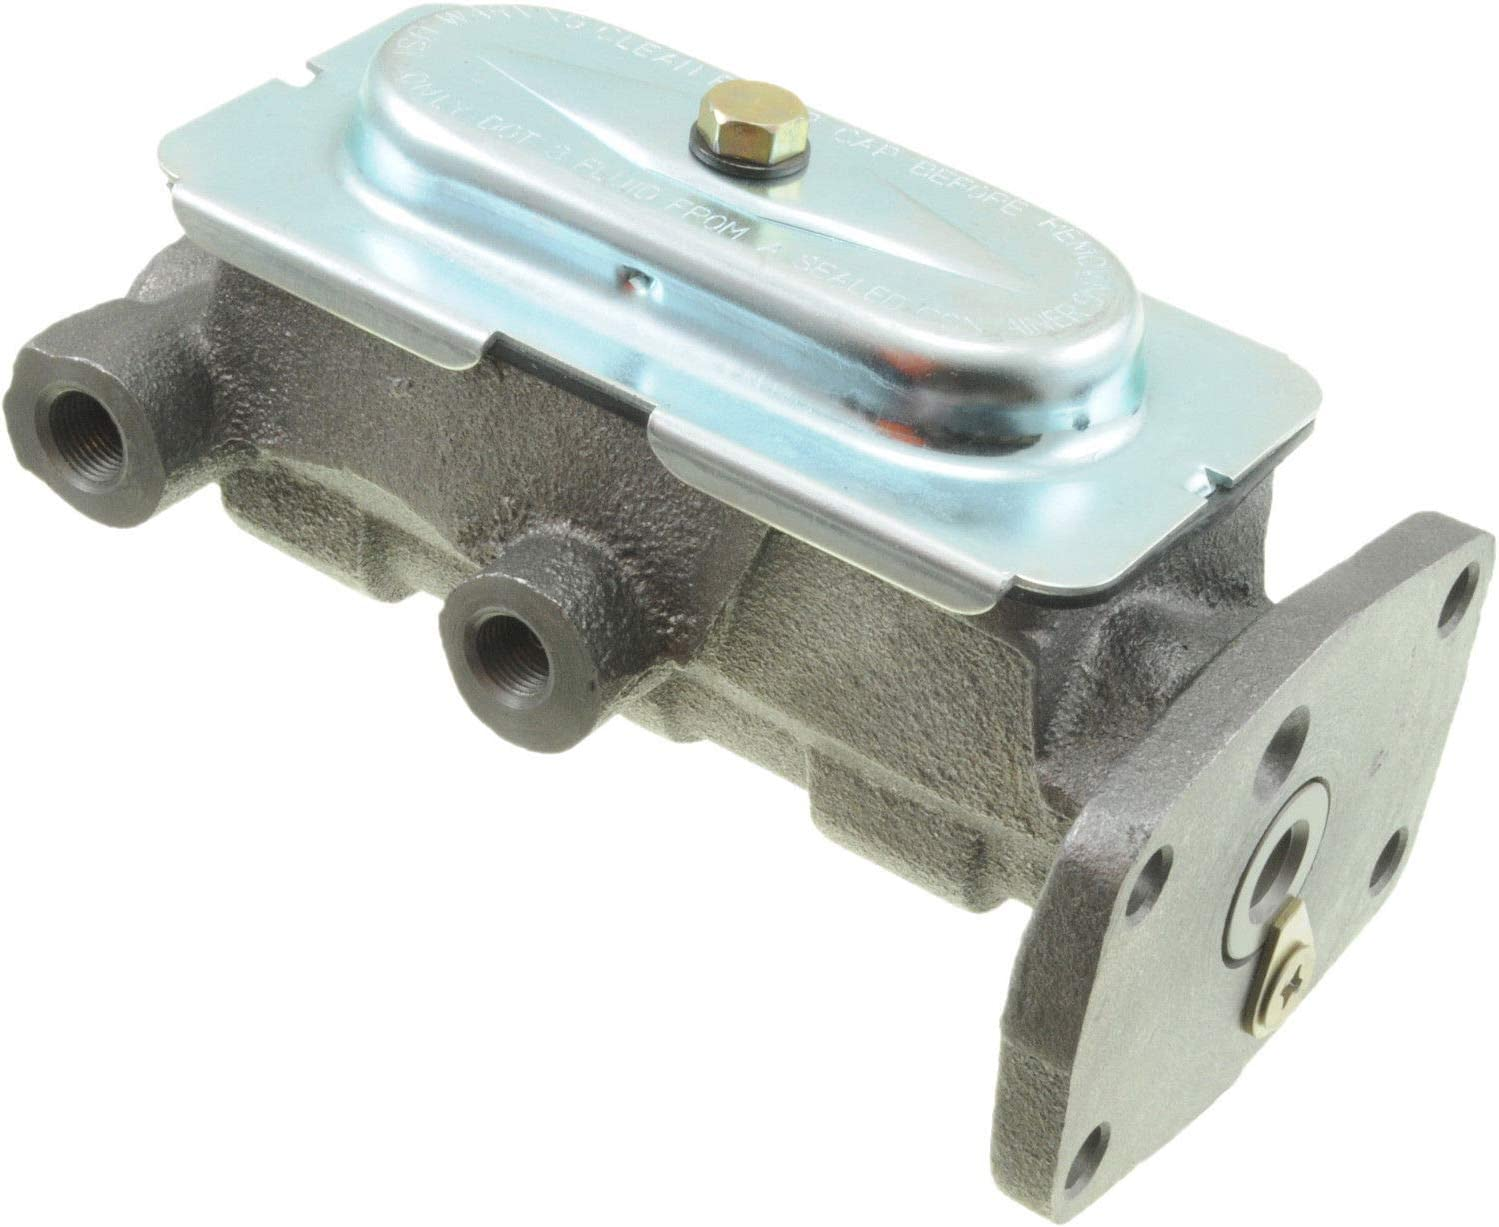 NAMCCO Brake Master Cylinder Compatible with Chrysler Town /& Country/ 67-70 1967-1970/ Belvedere 1970/ Challenger 67-70/ Charger 67-70/ Coronet MC36221 130.63009